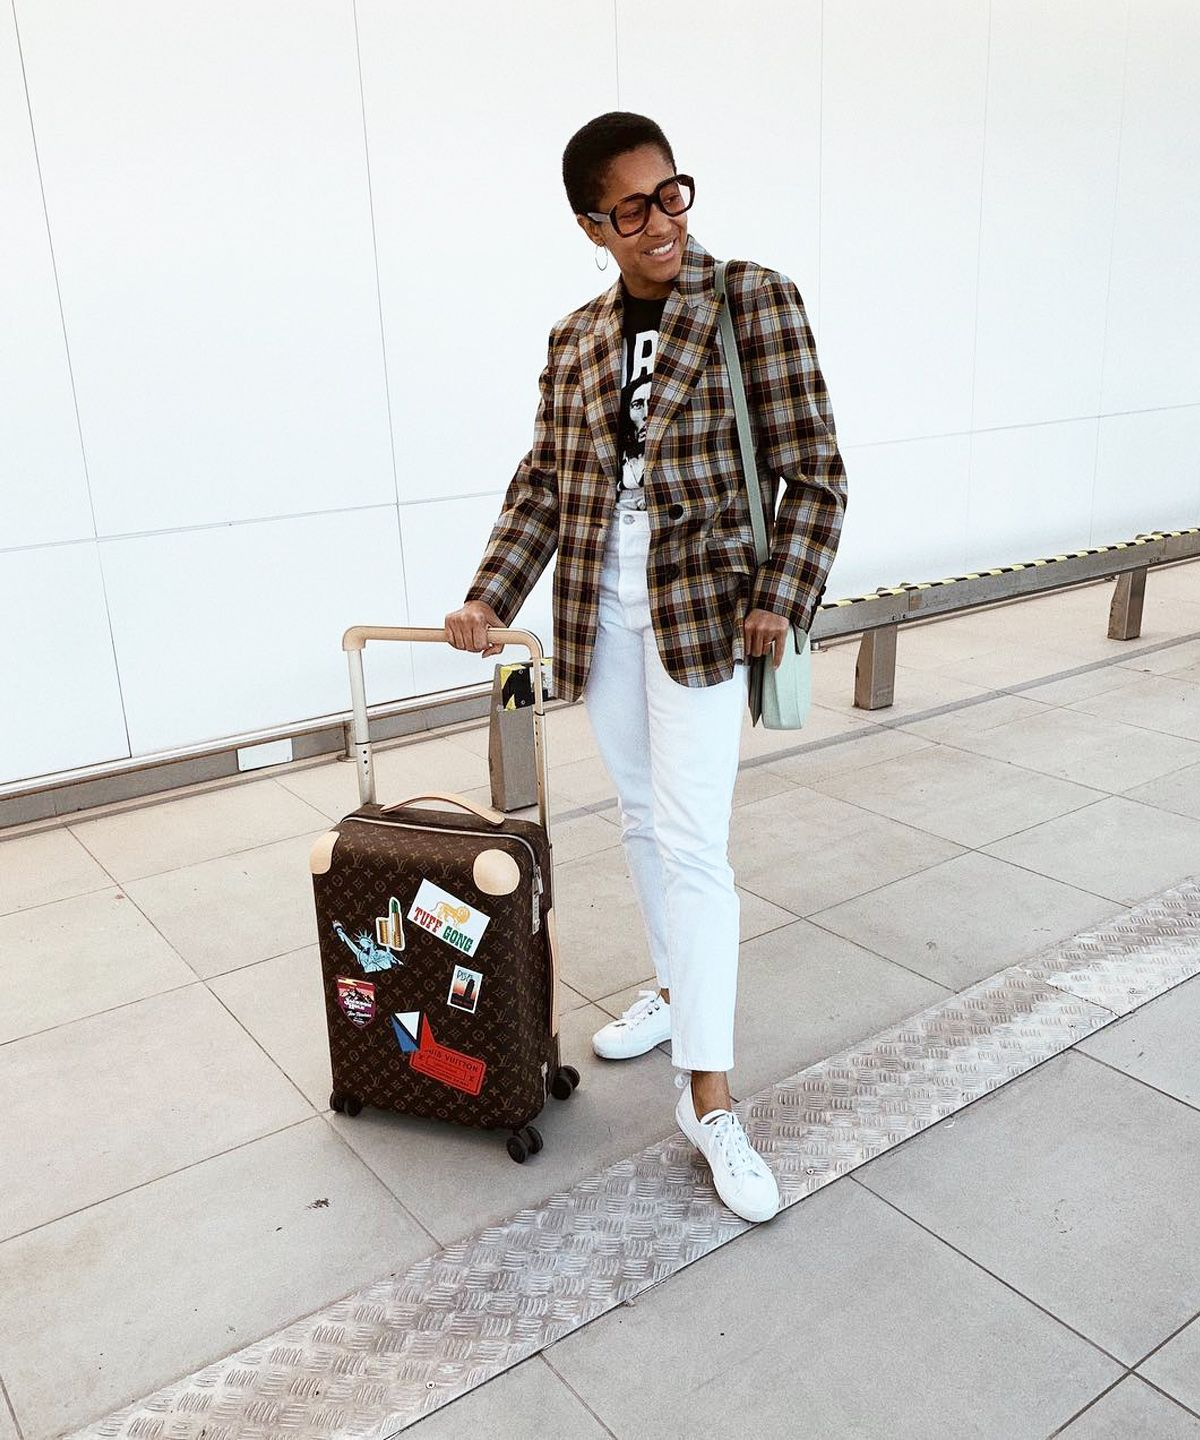 27 Outfits That Look 10/10 Styled With Trainers